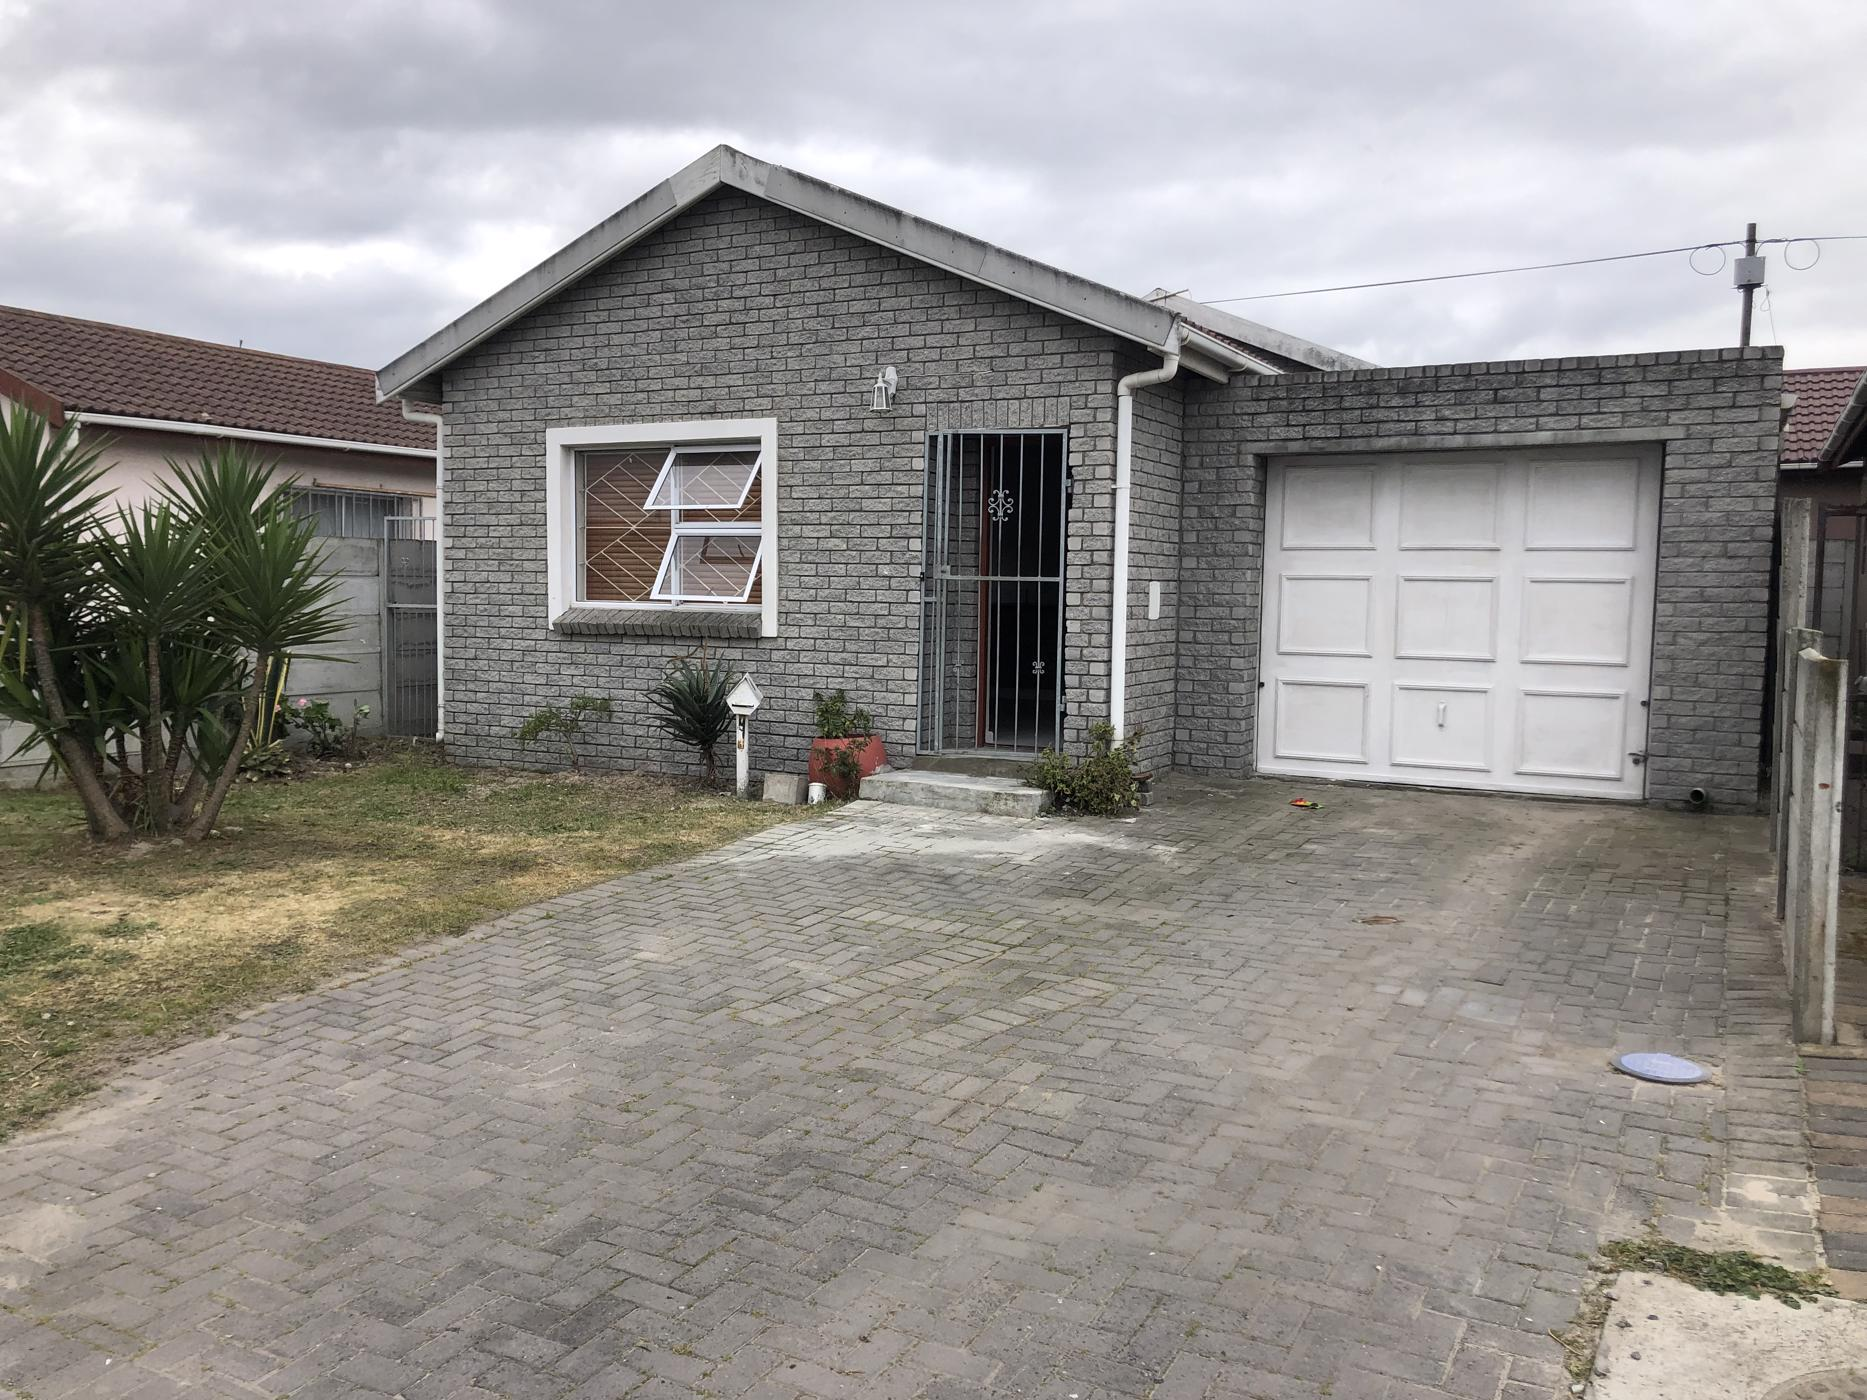 https://listing.pamgolding.co.za/images/properties/201909/534898/H/534898_H_16.jpg